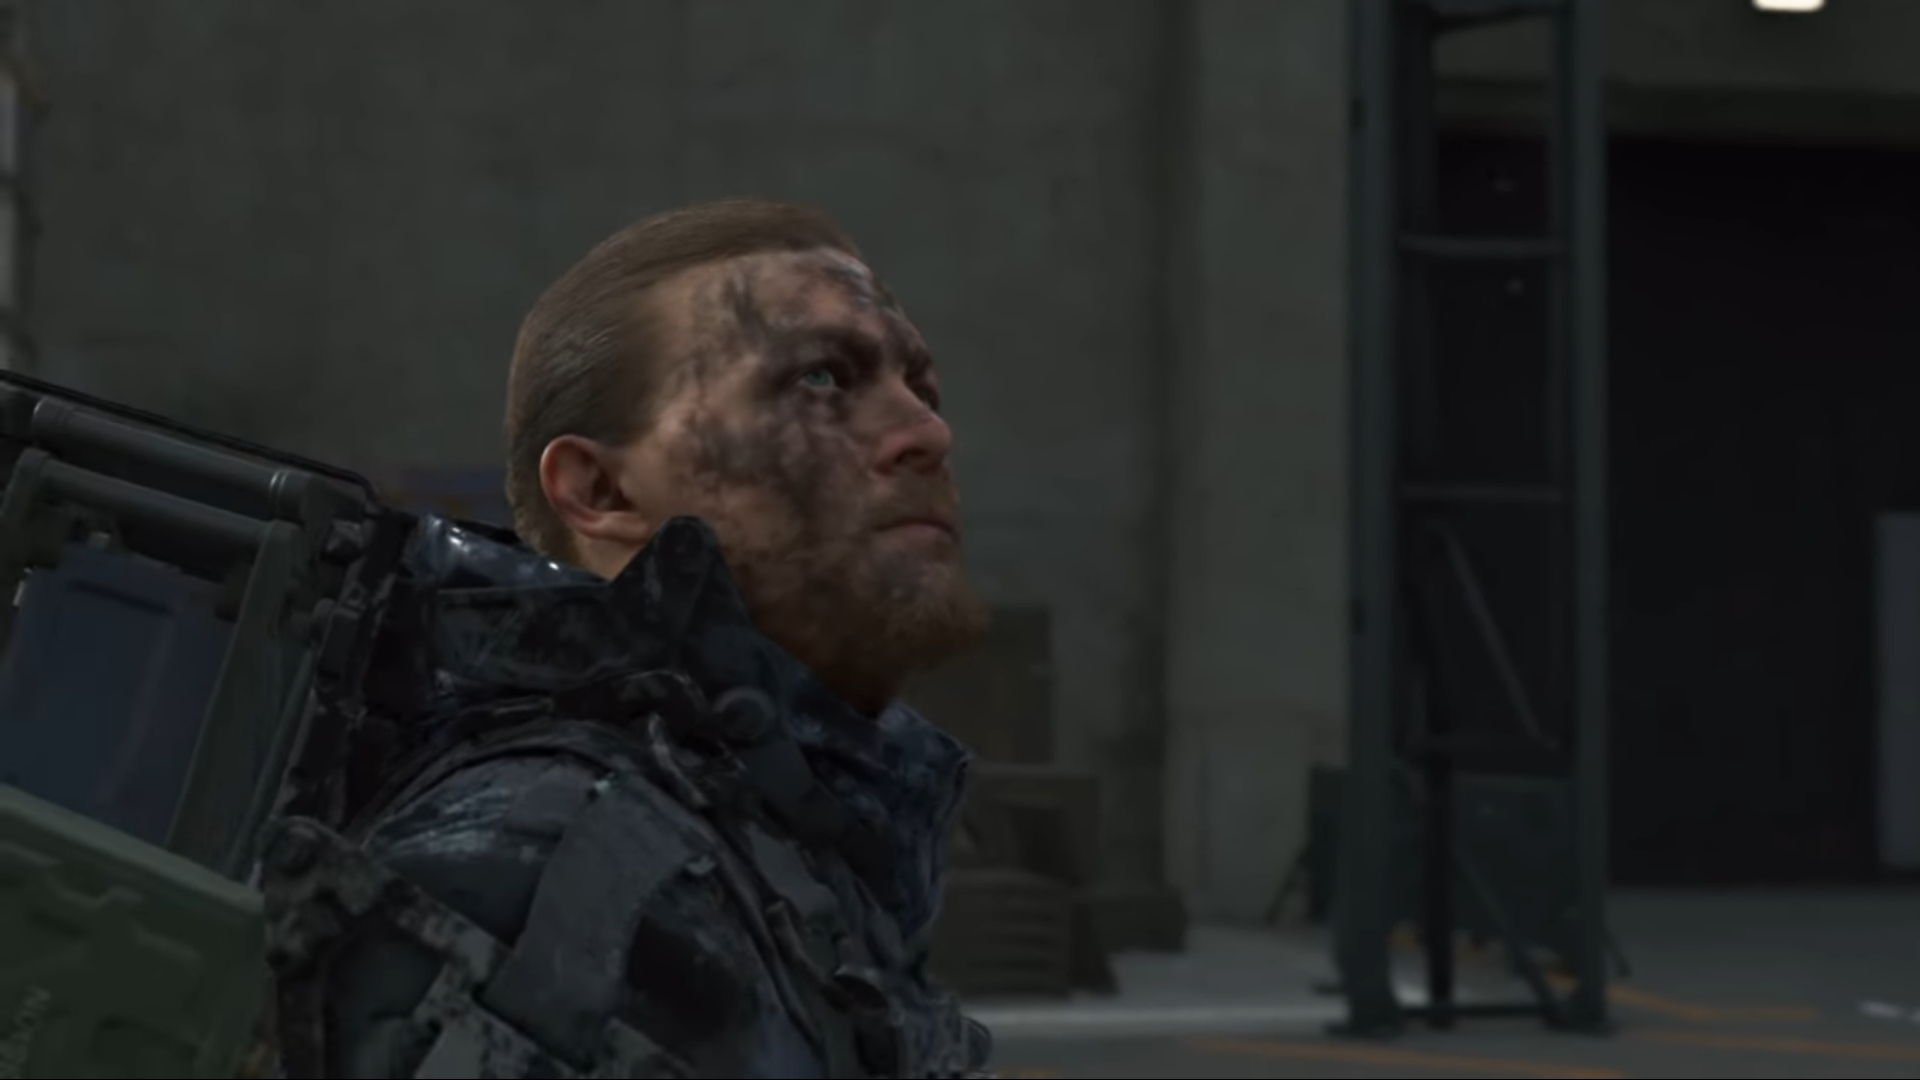 Screenshot_2019-11-25-23-39-33-431_com.google.android.youtube.jpg - Death Stranding